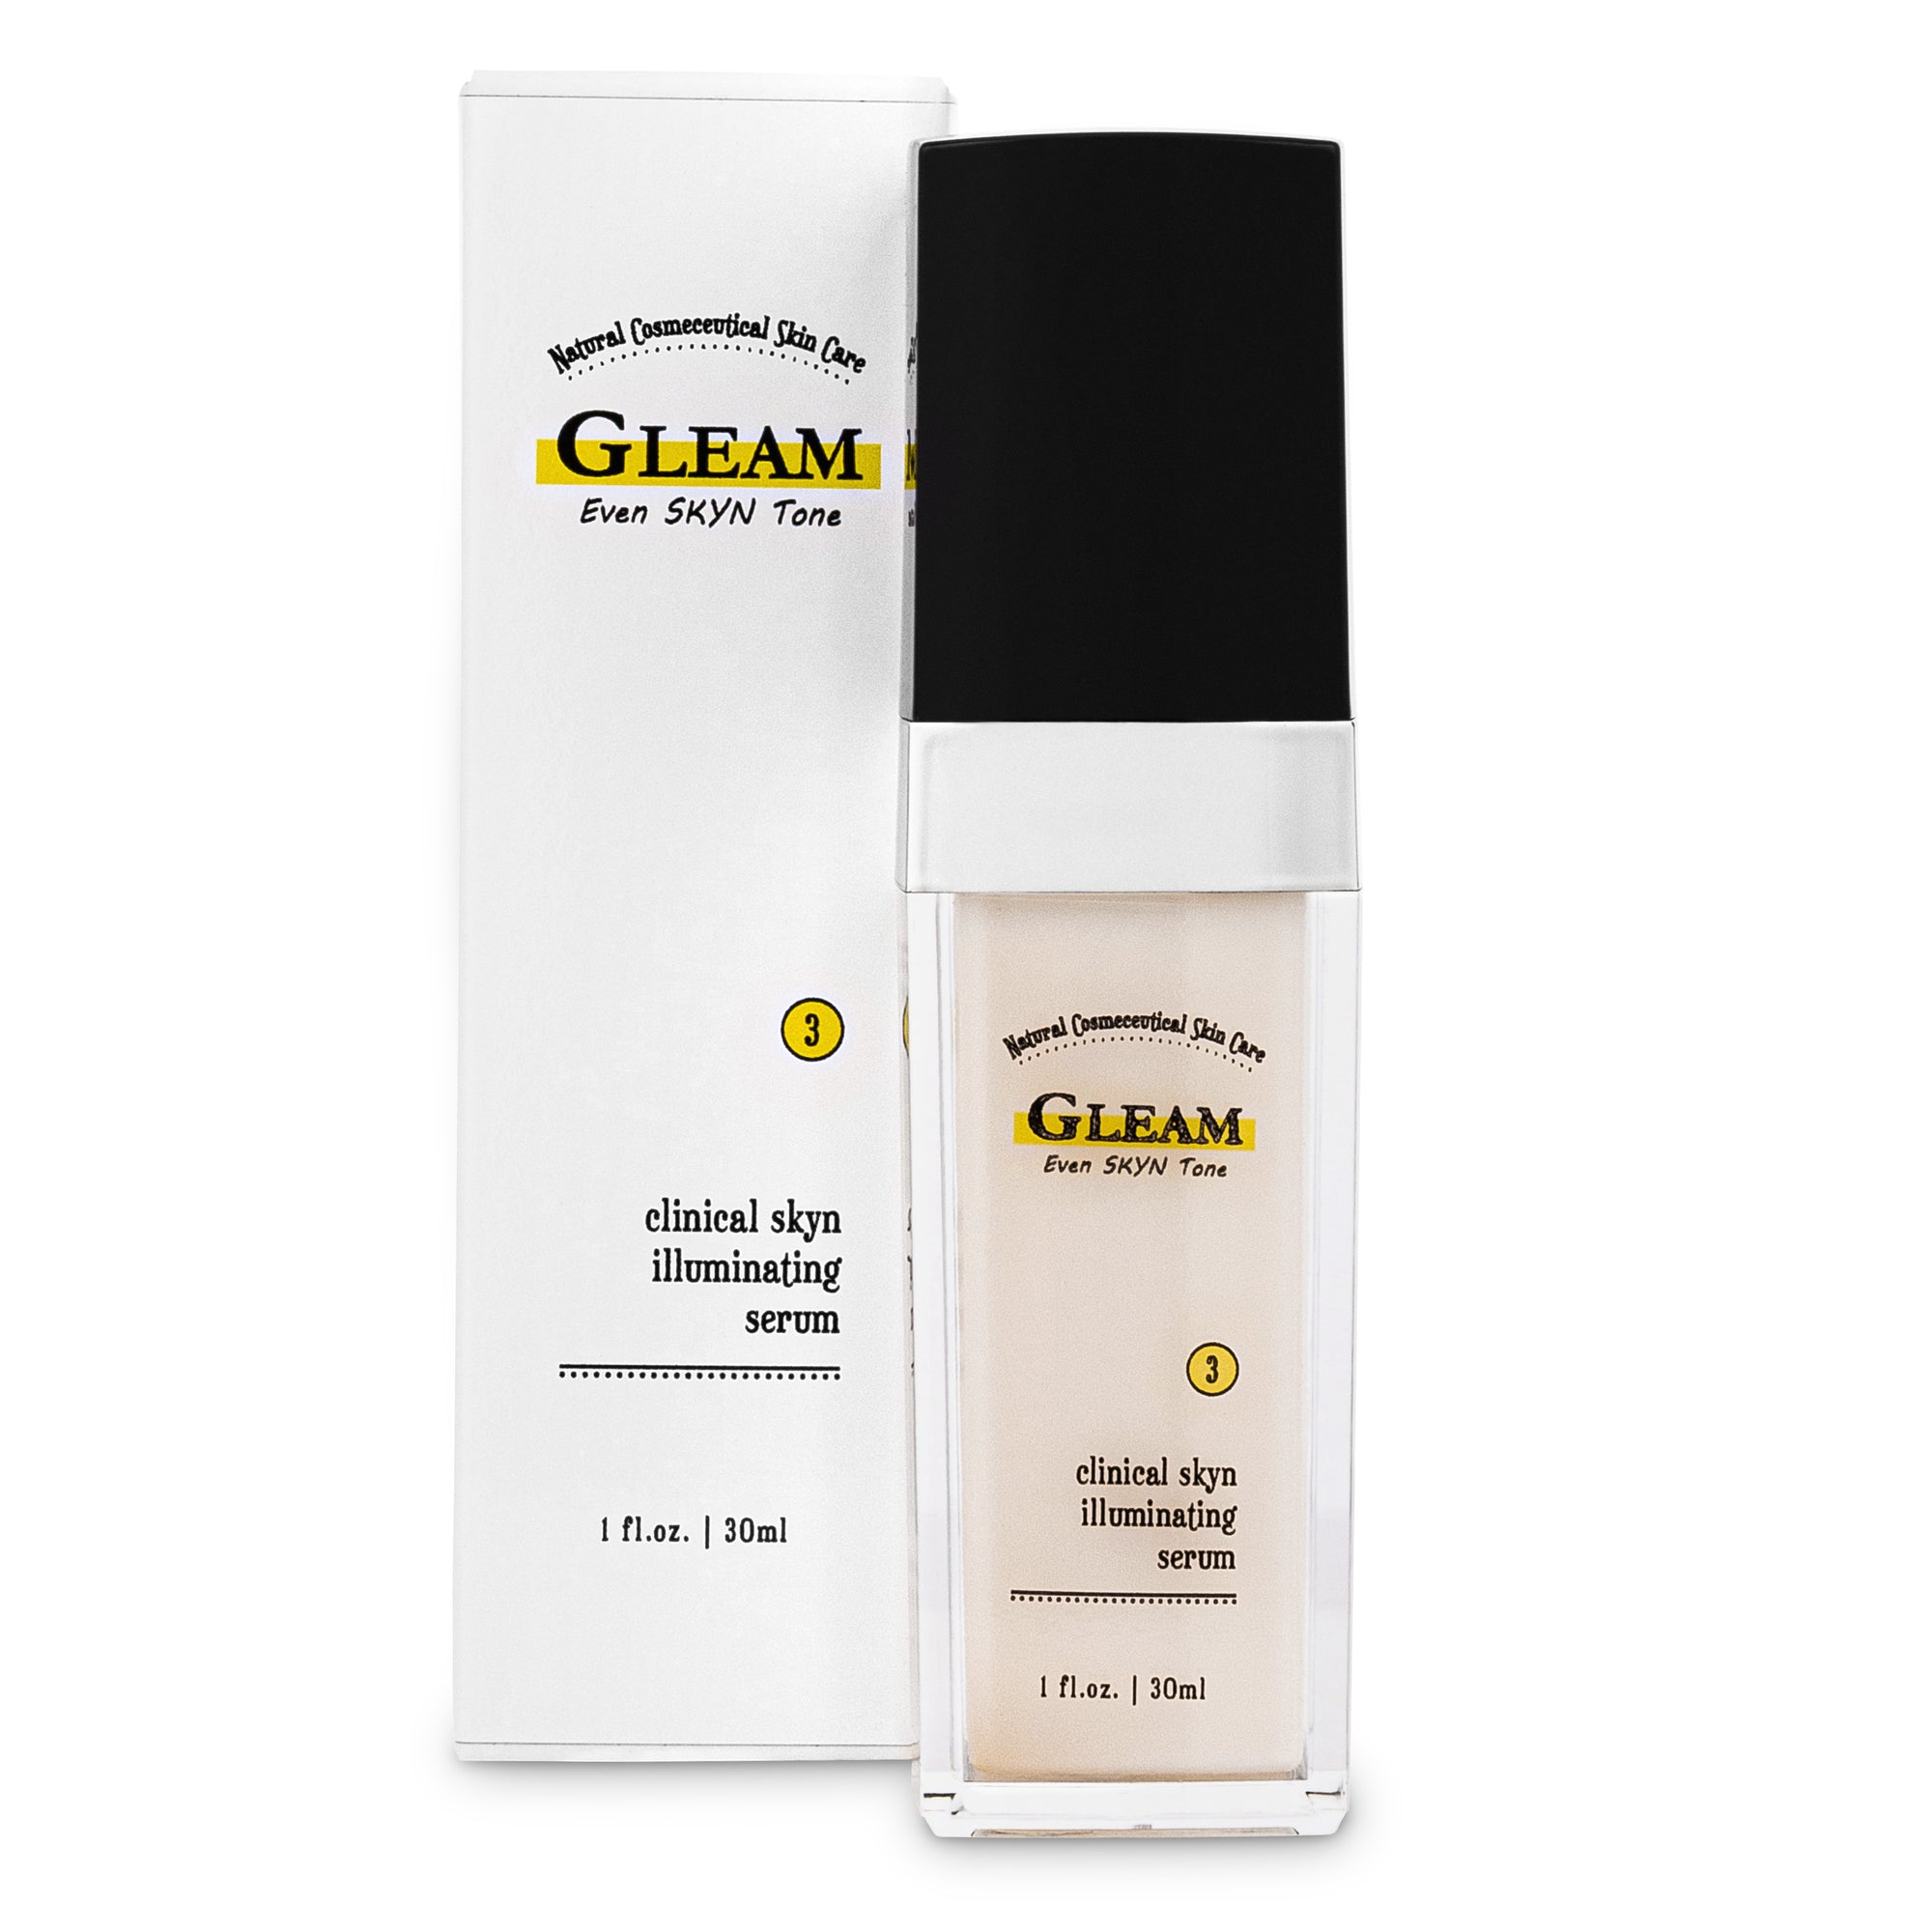 Gleam Clinical SKYN Illuminating Serum